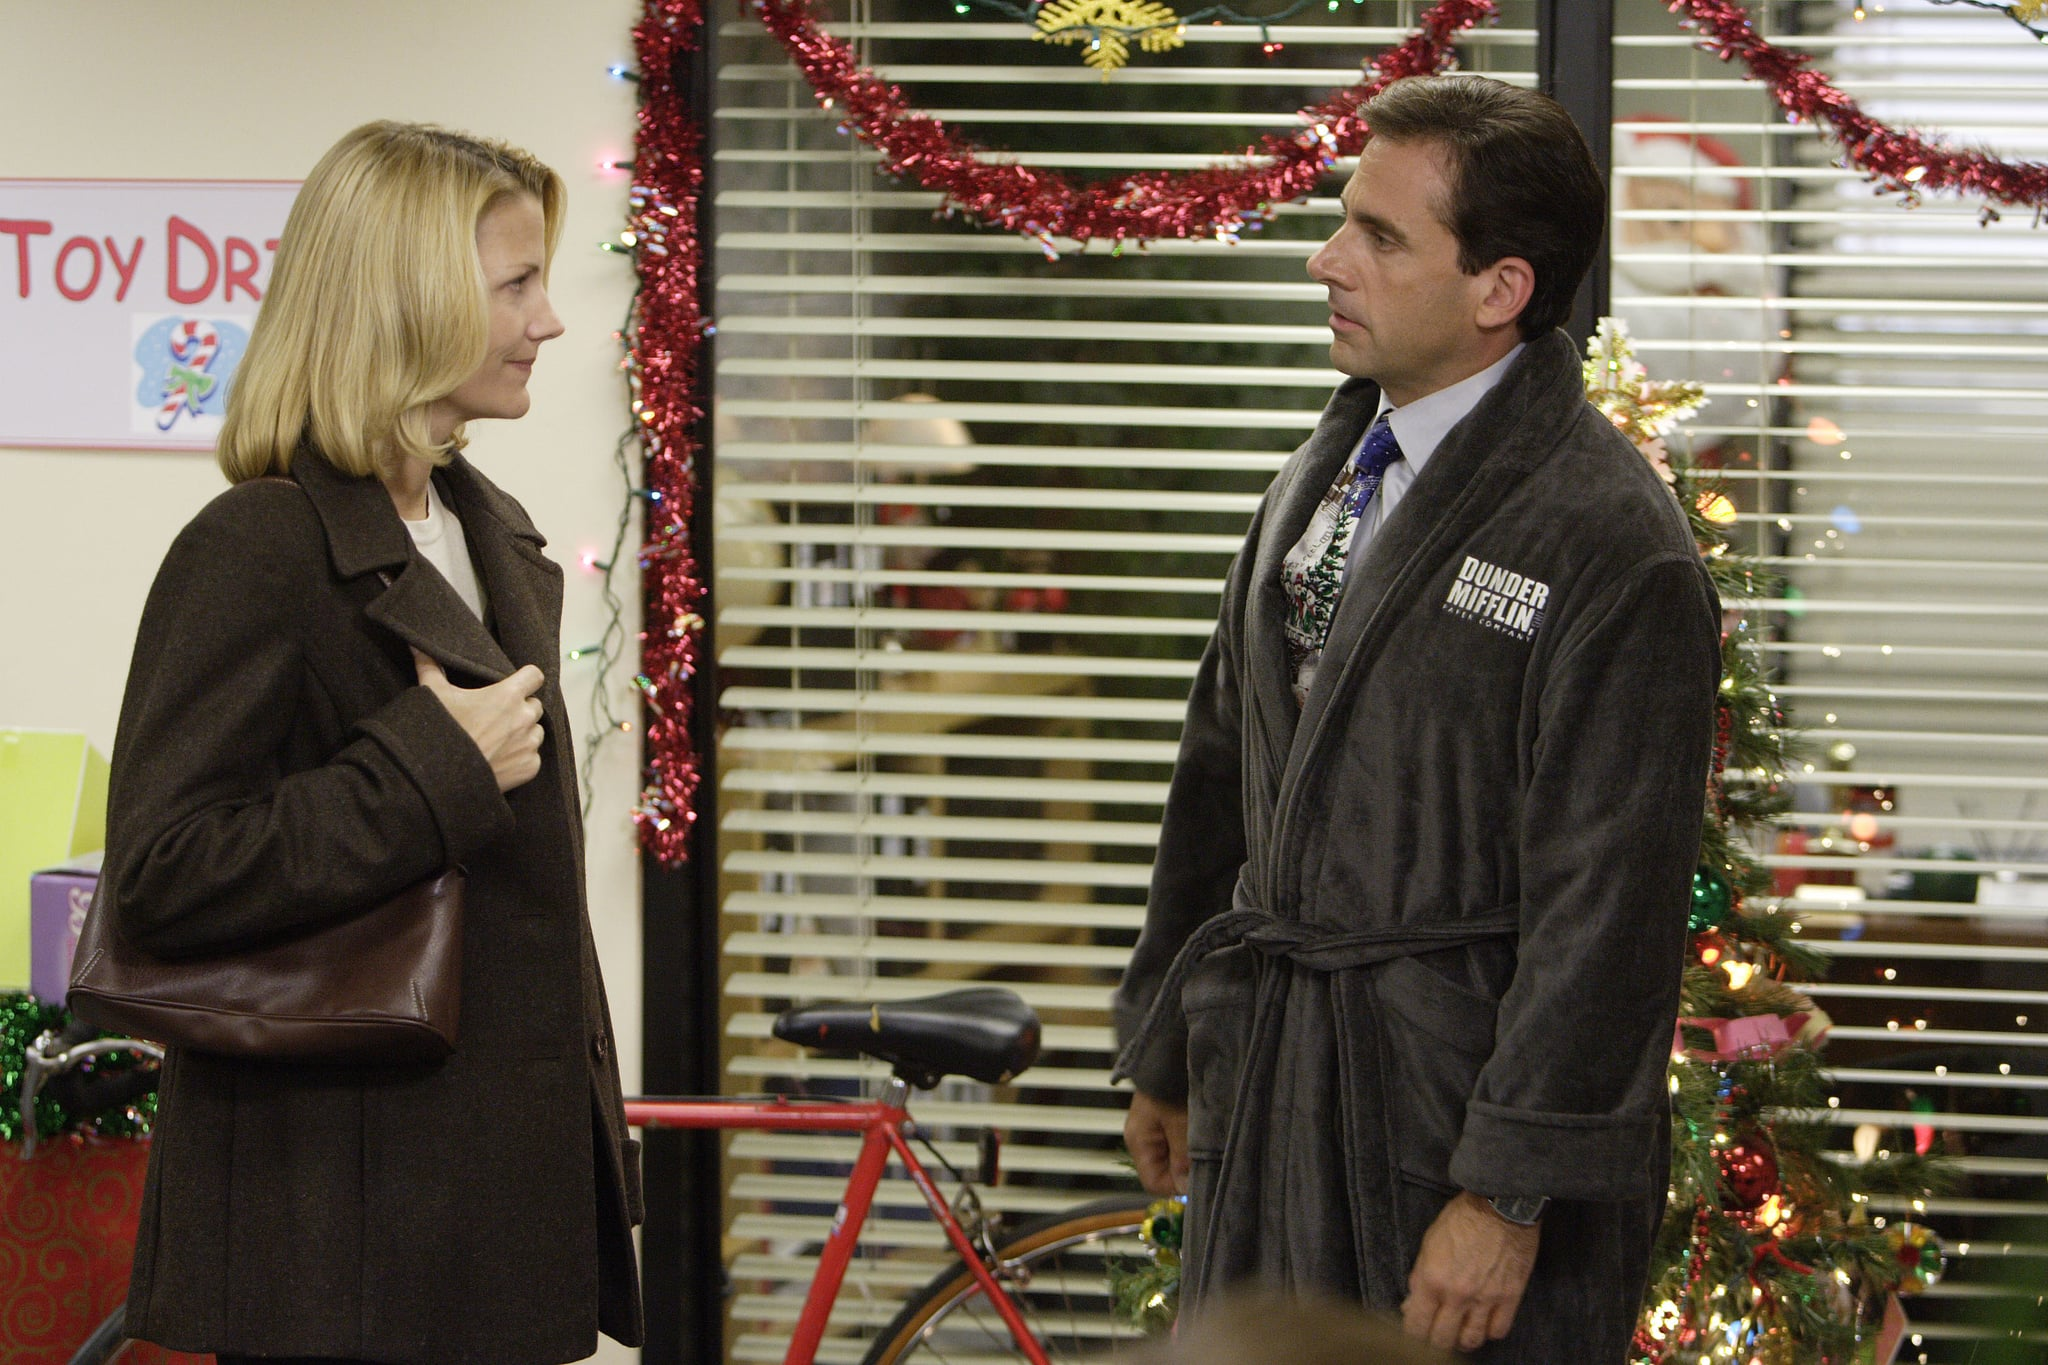 THE OFFICE, Nancy Walls, Steve Carell, 'A Benihana Christmas', (Season 3, aired Dec 14, 2006), 2005-. photo: Paul Drinkwater / © NBC / Courtesy Everett Collection